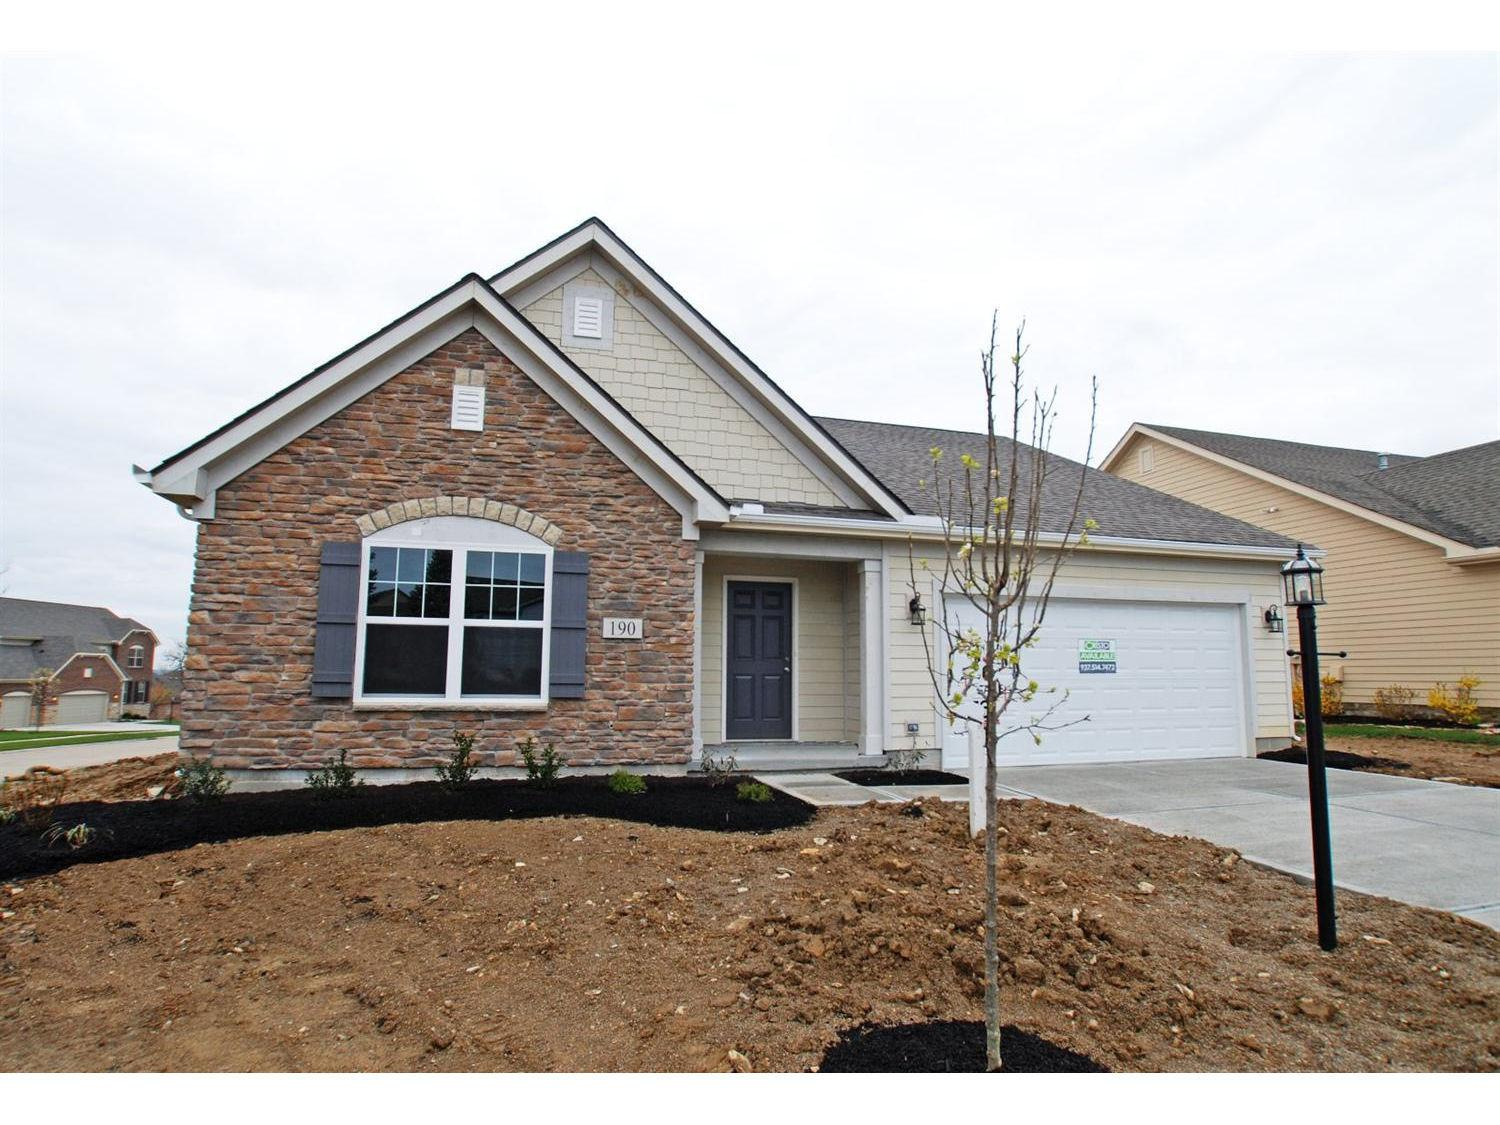 Photo 1 for 190 Cobblestone Ln Springboro, OH 45066